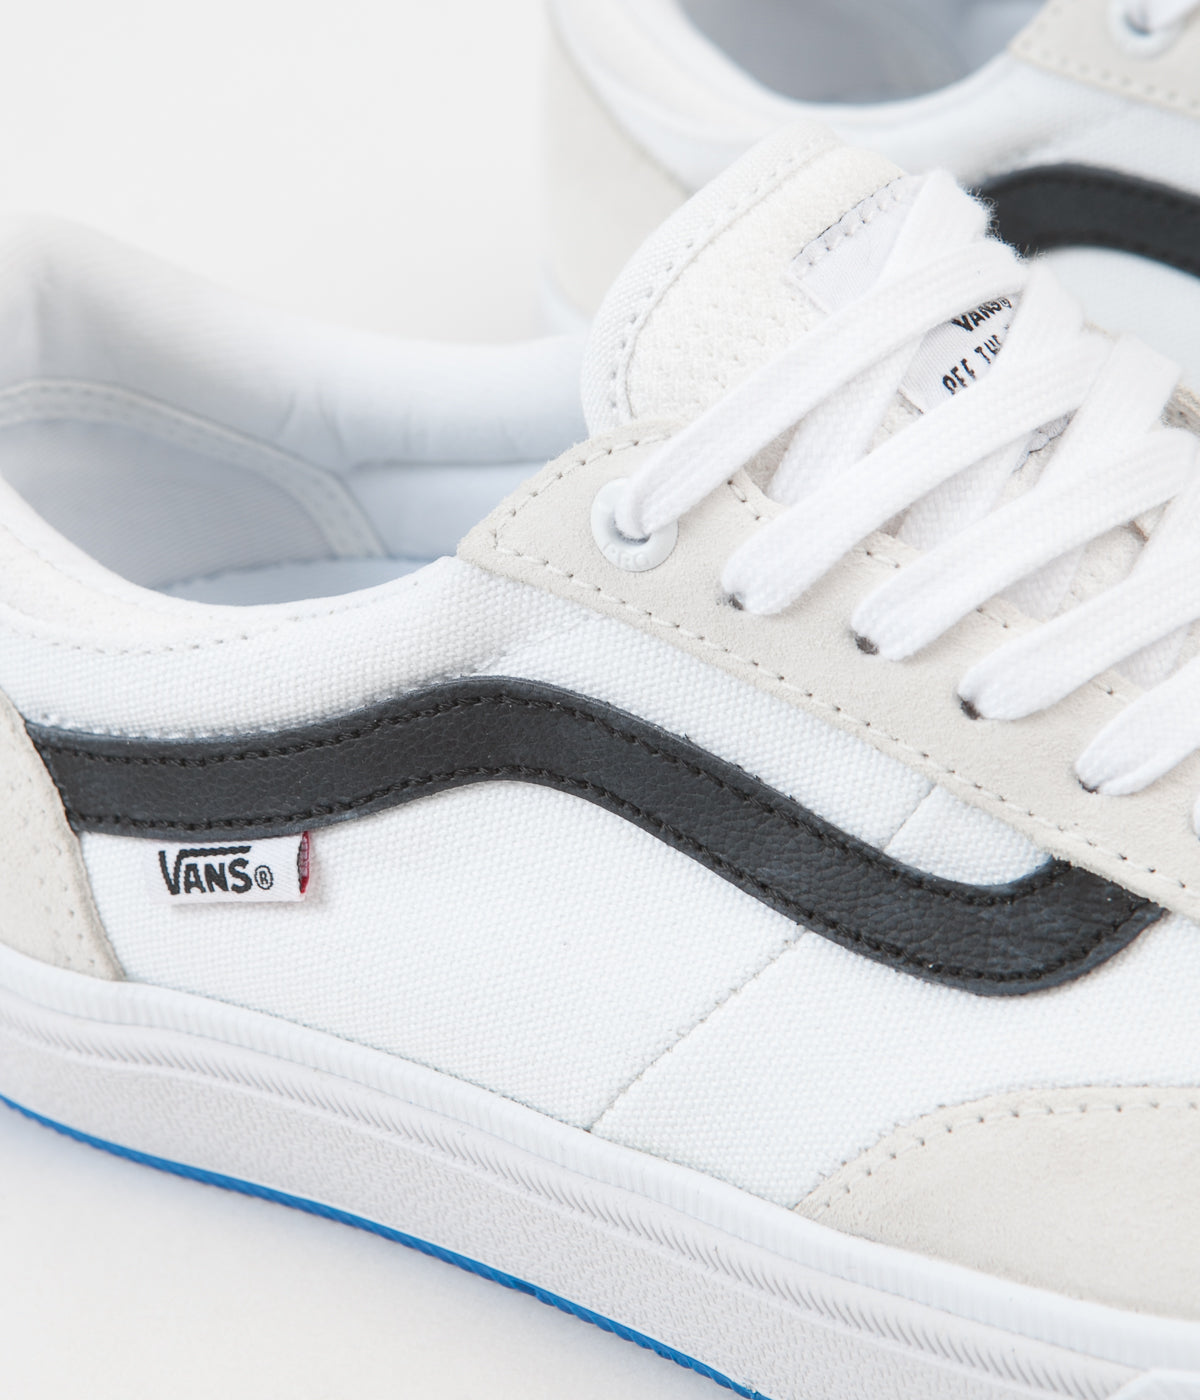 1fbb499db6 ... Vans Gilbert Crockett 2 Pro Shoes - True White   Black ...